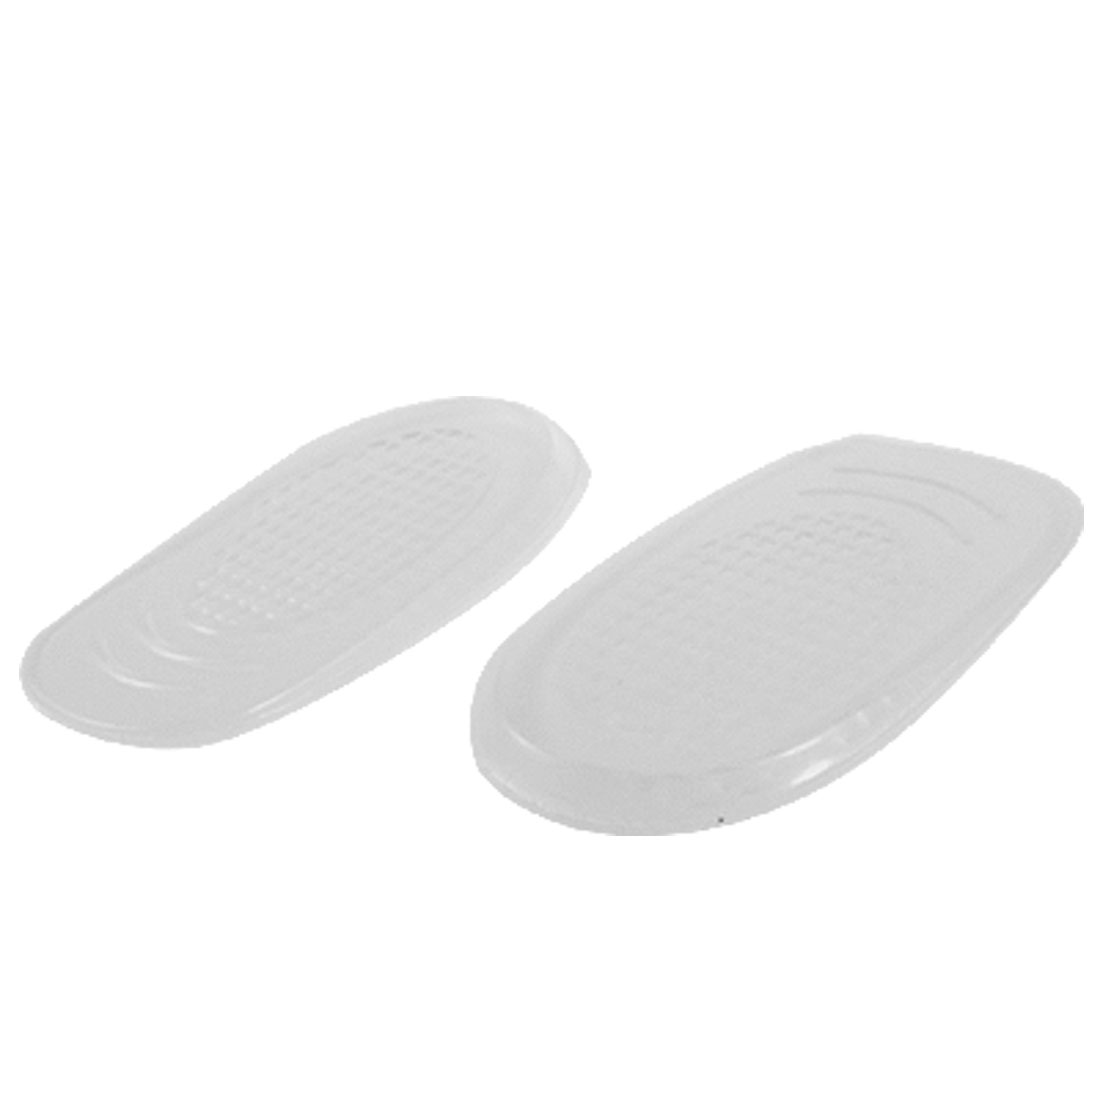 Pair Clear Silicone Nonslip Heel Insoles Pad for Woman Man